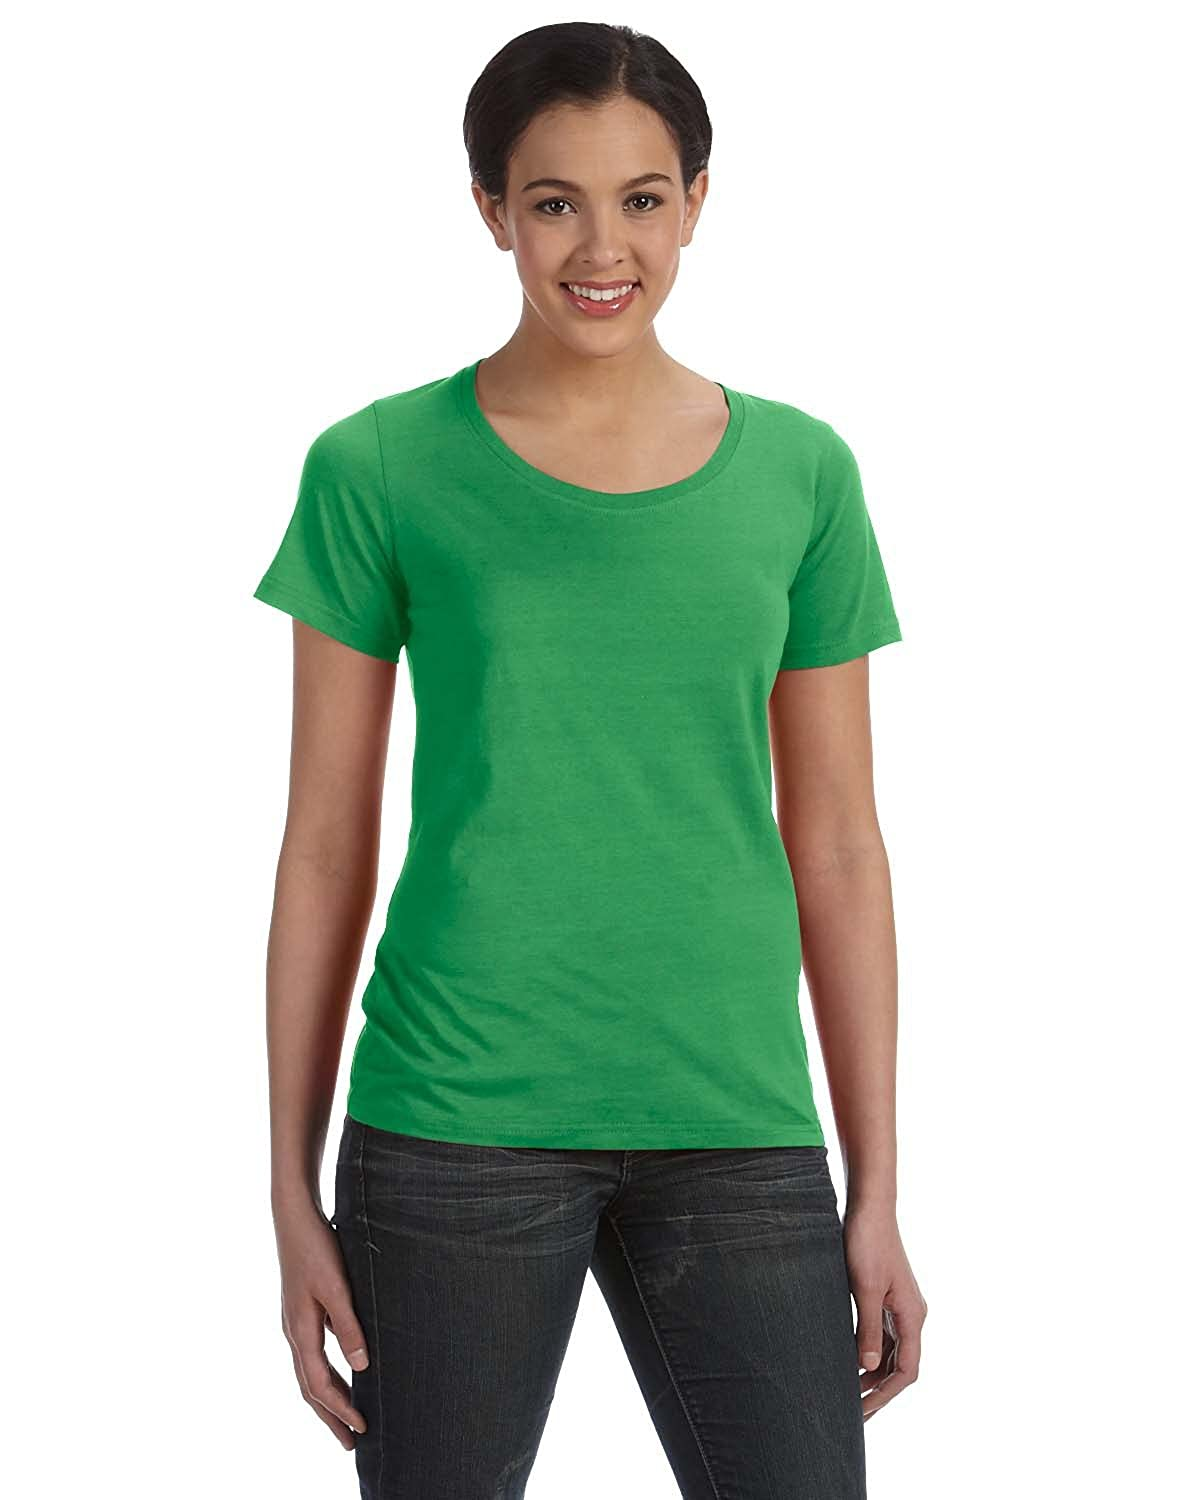 6aed9707389c Anvil 391 Sheer Scoop Neck Tee at Amazon Women's Clothing store: